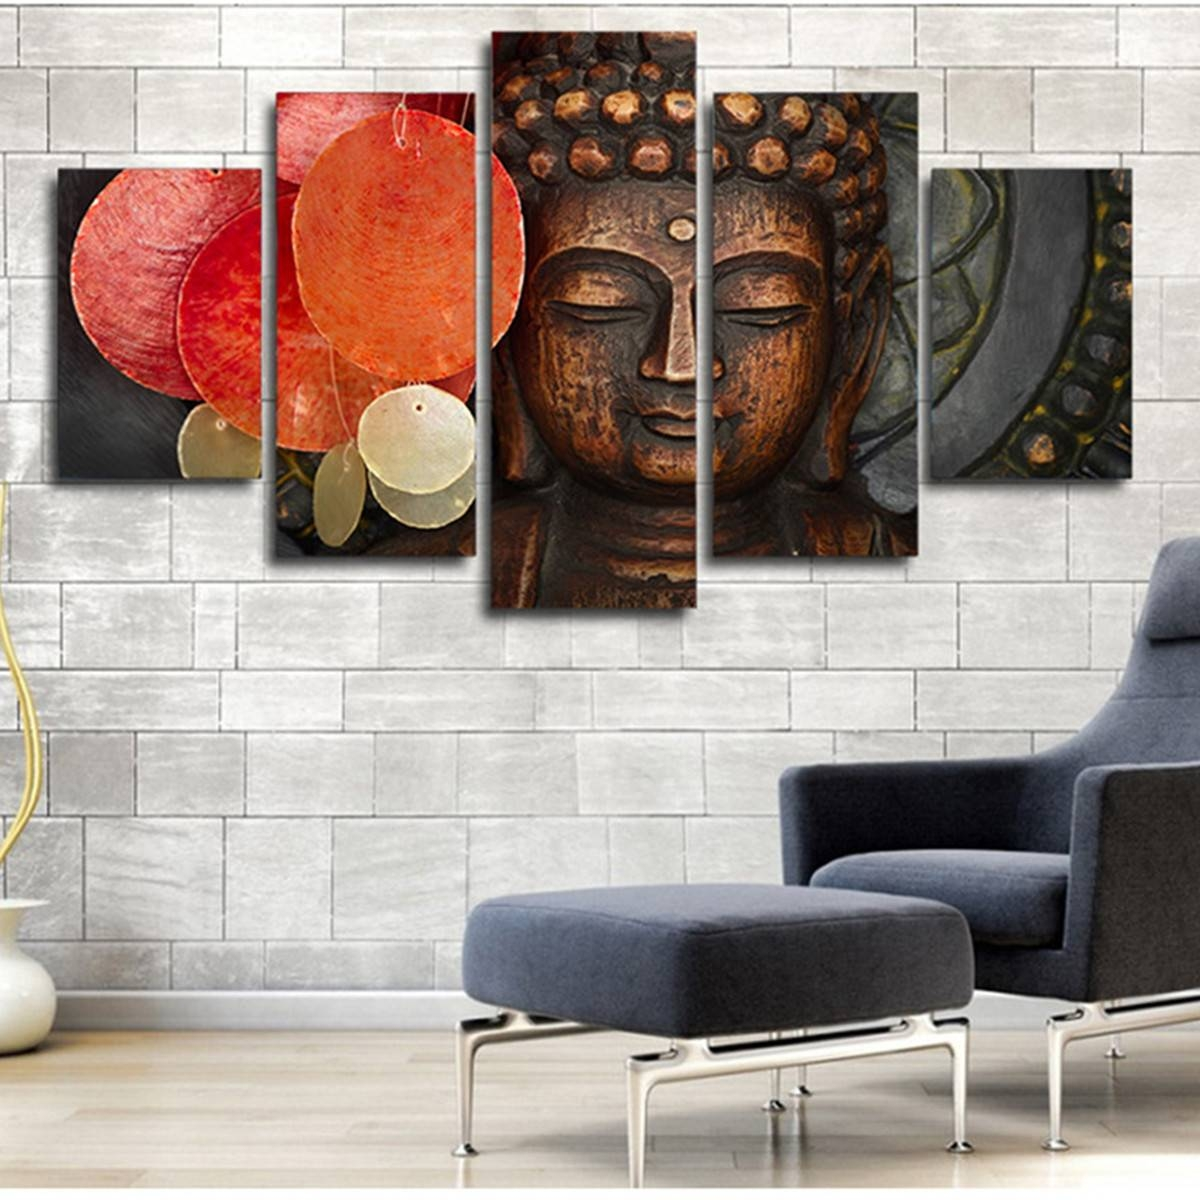 Online Buy Wholesale 3D 5 Piece Canvas Art From China 3D 5 Piece With Regard To Most Recently Released 3D Buddha Wall Art (View 18 of 20)